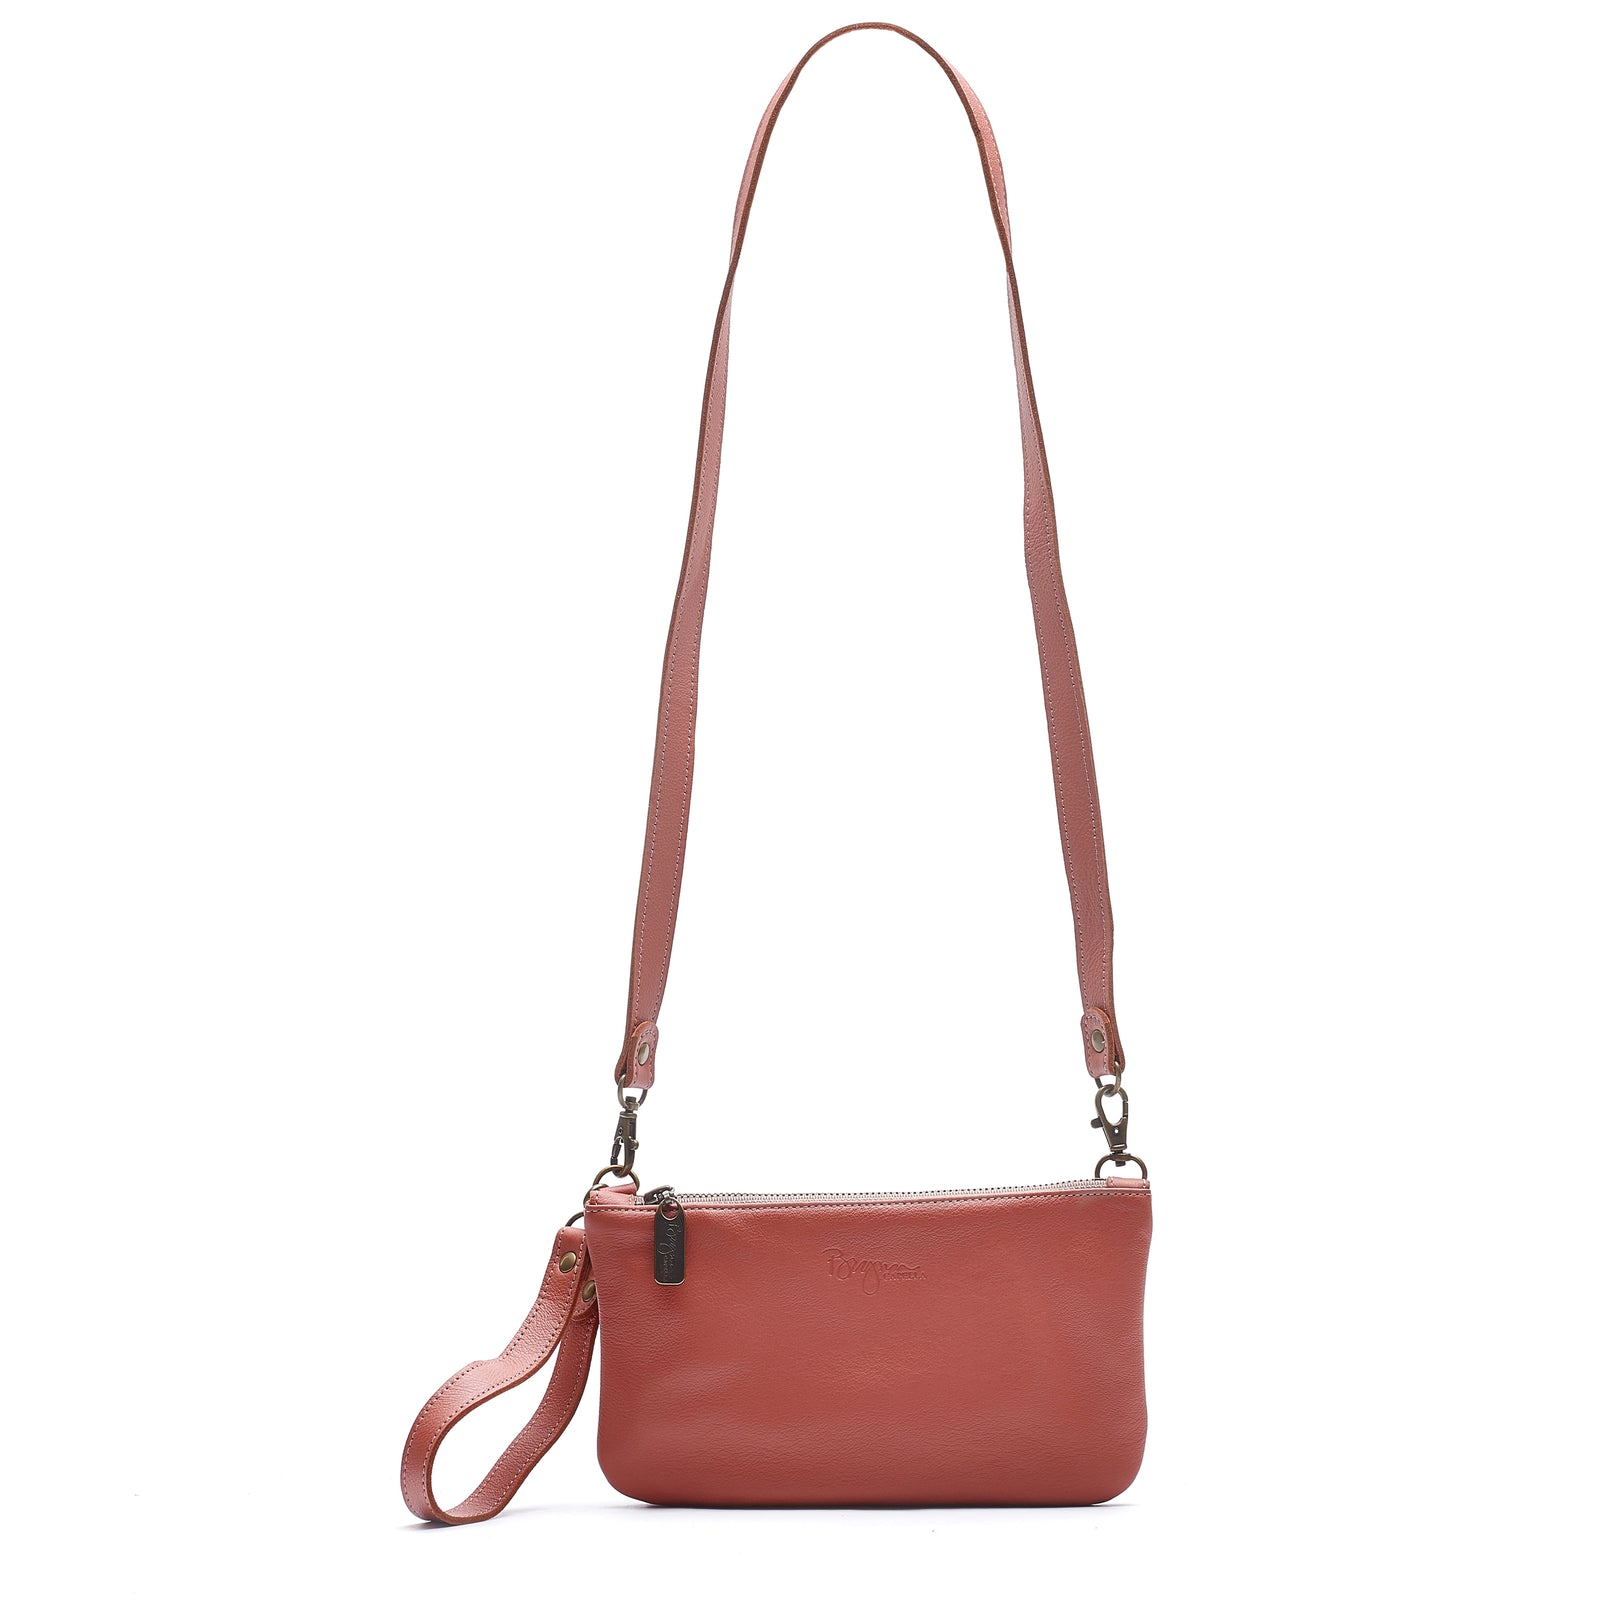 Cher Crossbody - Mai Tai - Brynn Capella, Mini Crossbody